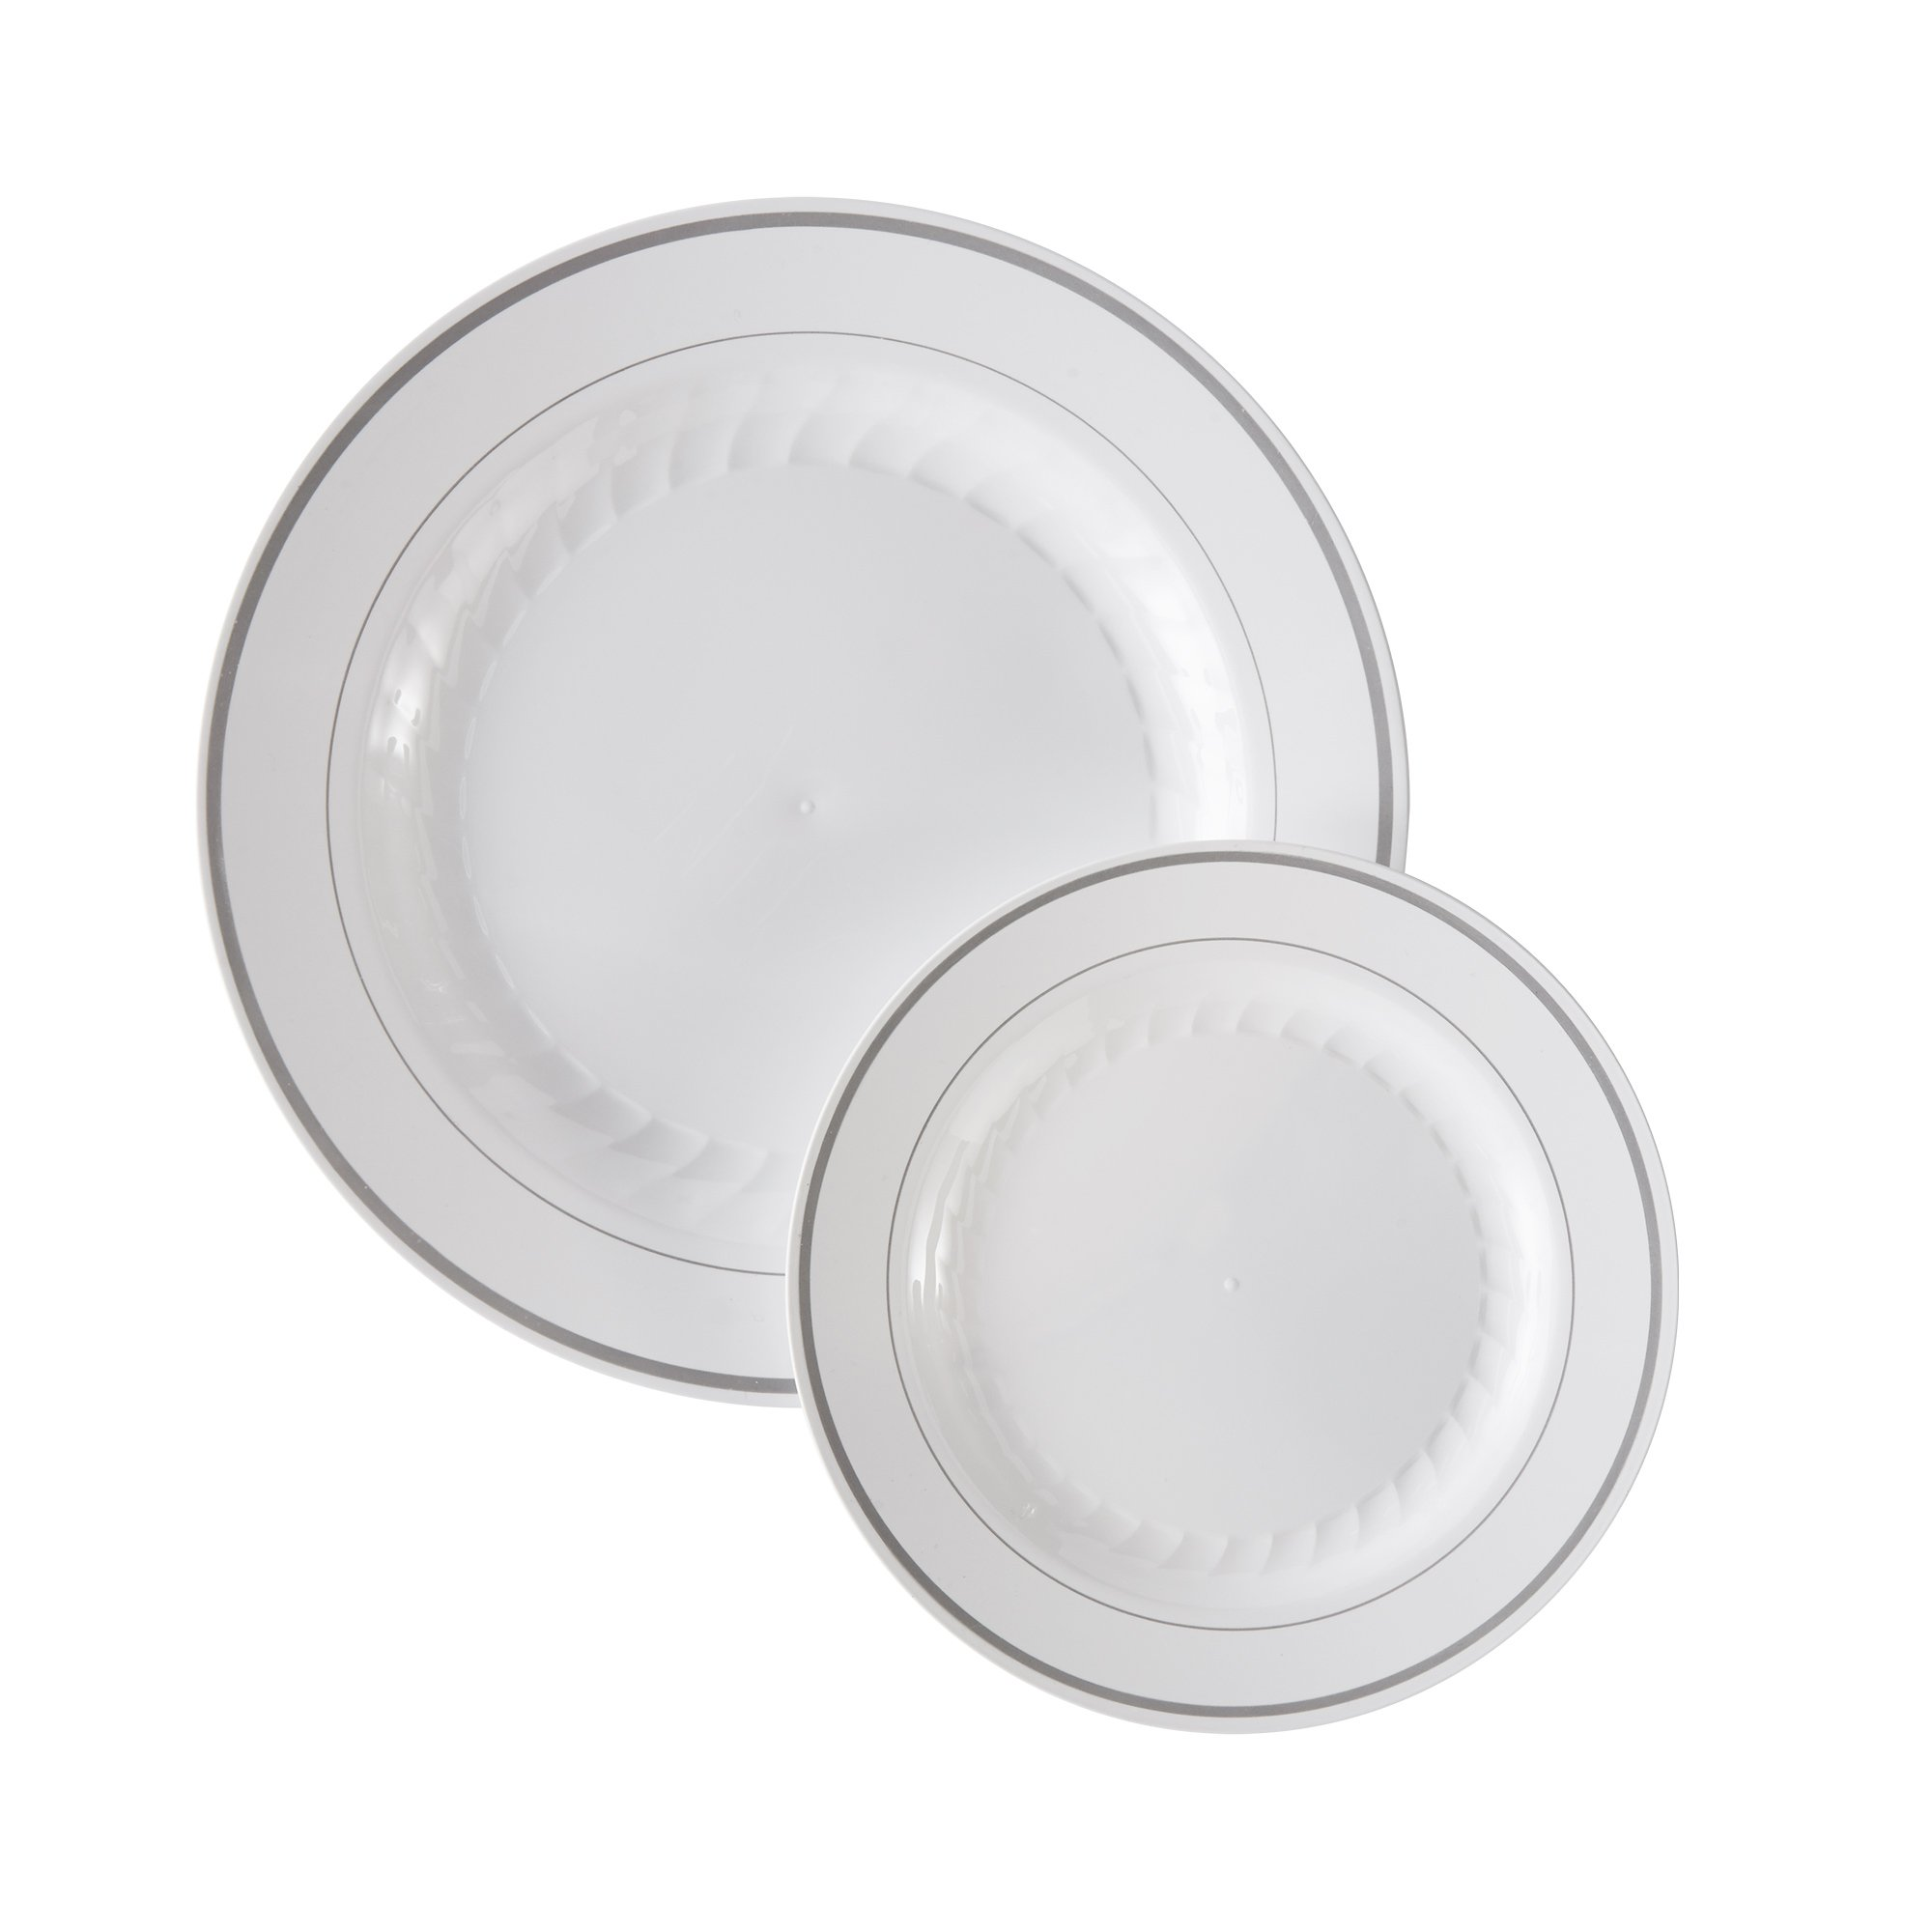 Masterpiece Premium Quality Heavyweight Plastic Plates 25 Dinner Plates and 25 Salad Plates  sc 1 st  Amazon.com & Amazon.com: Reflections